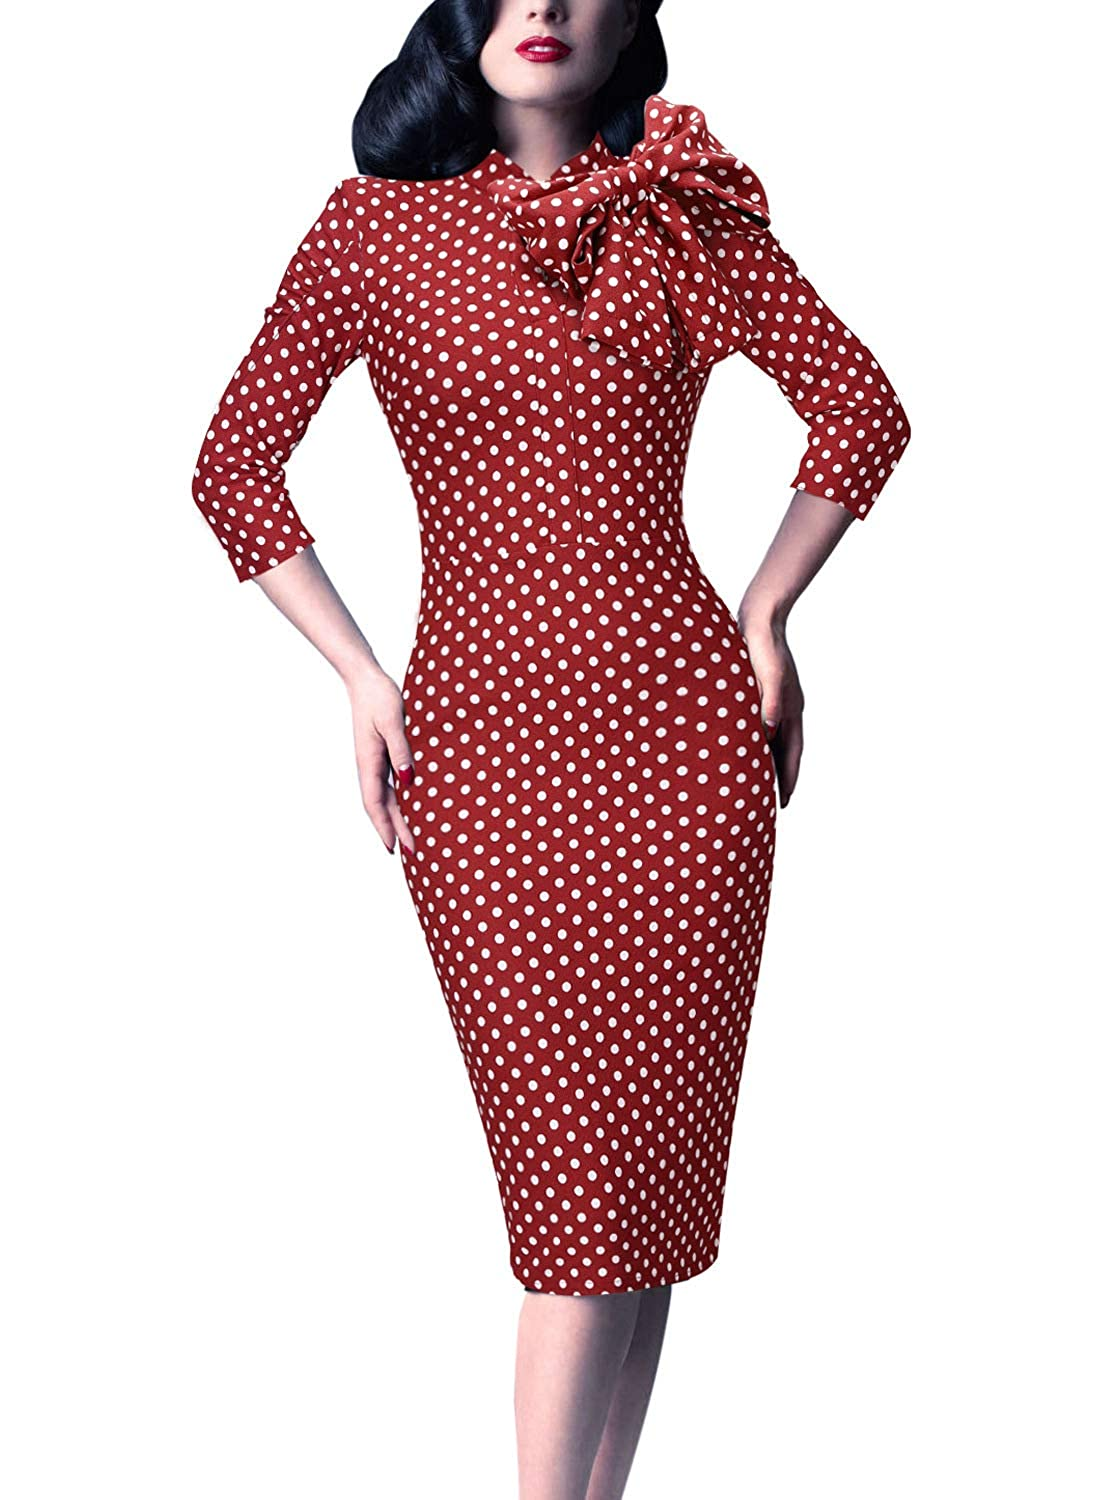 Red and White Polka Dot VfEmage Women's Celebrity Vintage Bowknot Party Cocktail Stretch Bodycon Dress